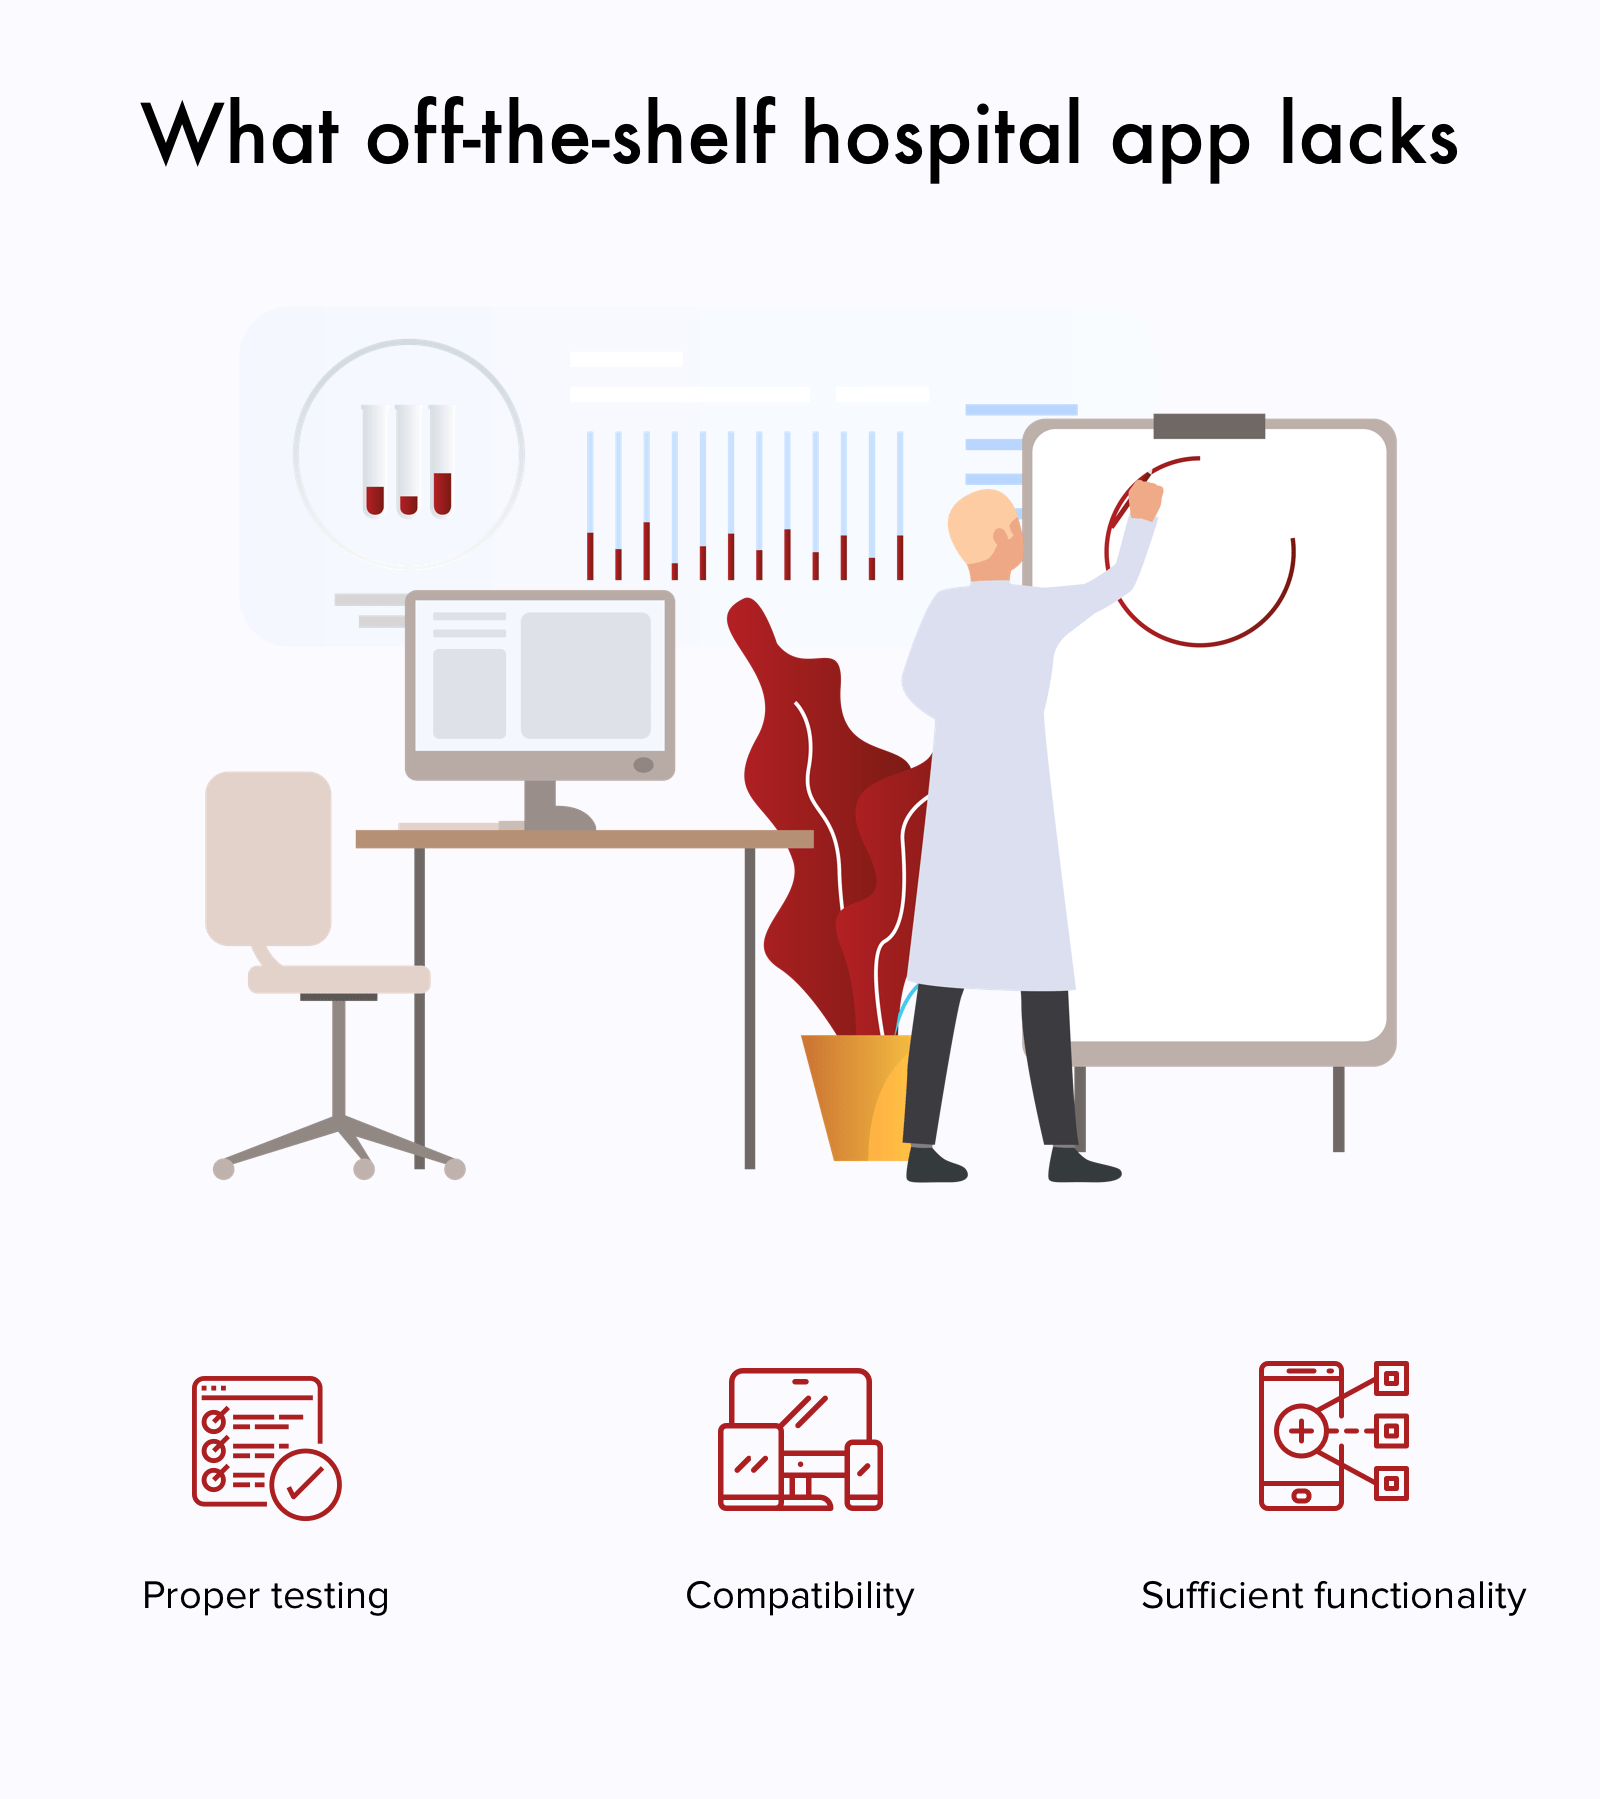 off-the-shelf healthcare app disadvantages